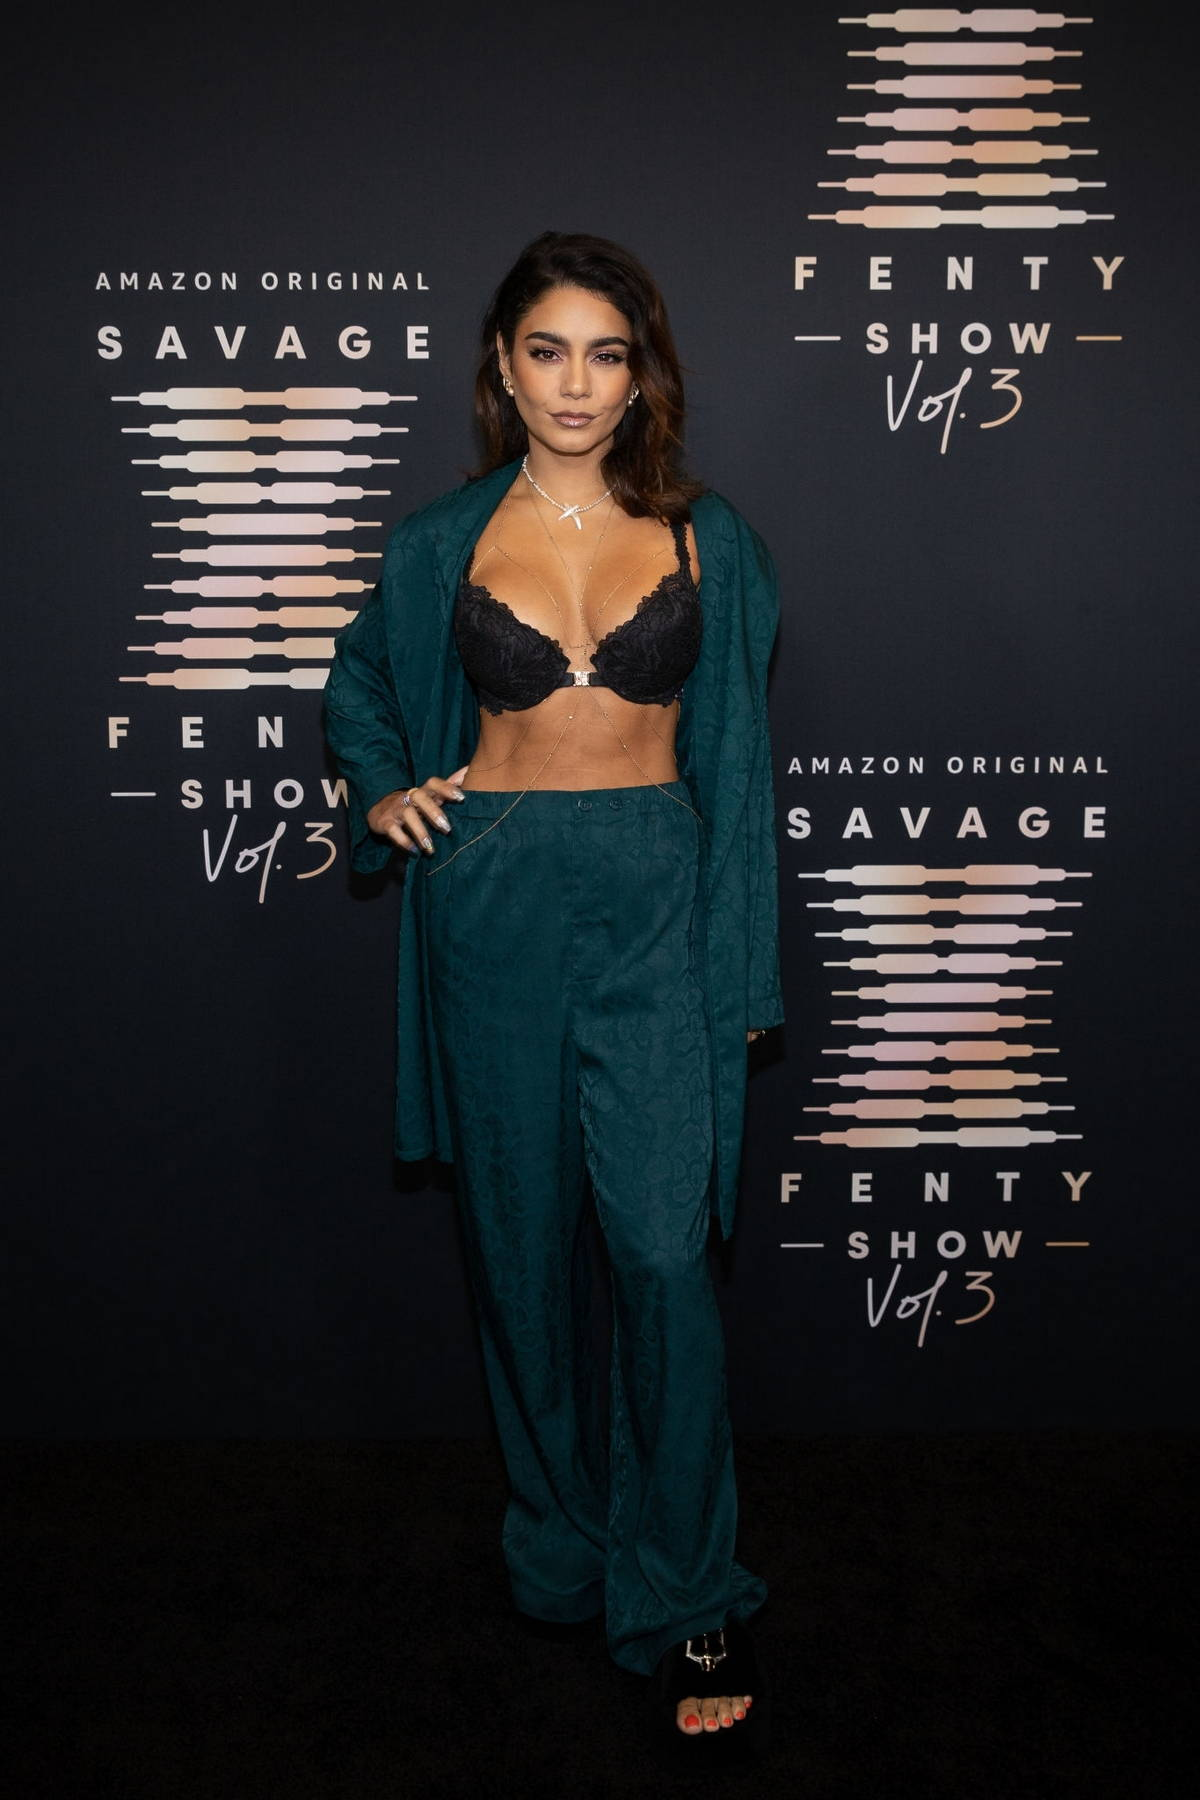 Vanessa Hudgens attends the Savage x Fenty Show Vol 3 in Los Angeles